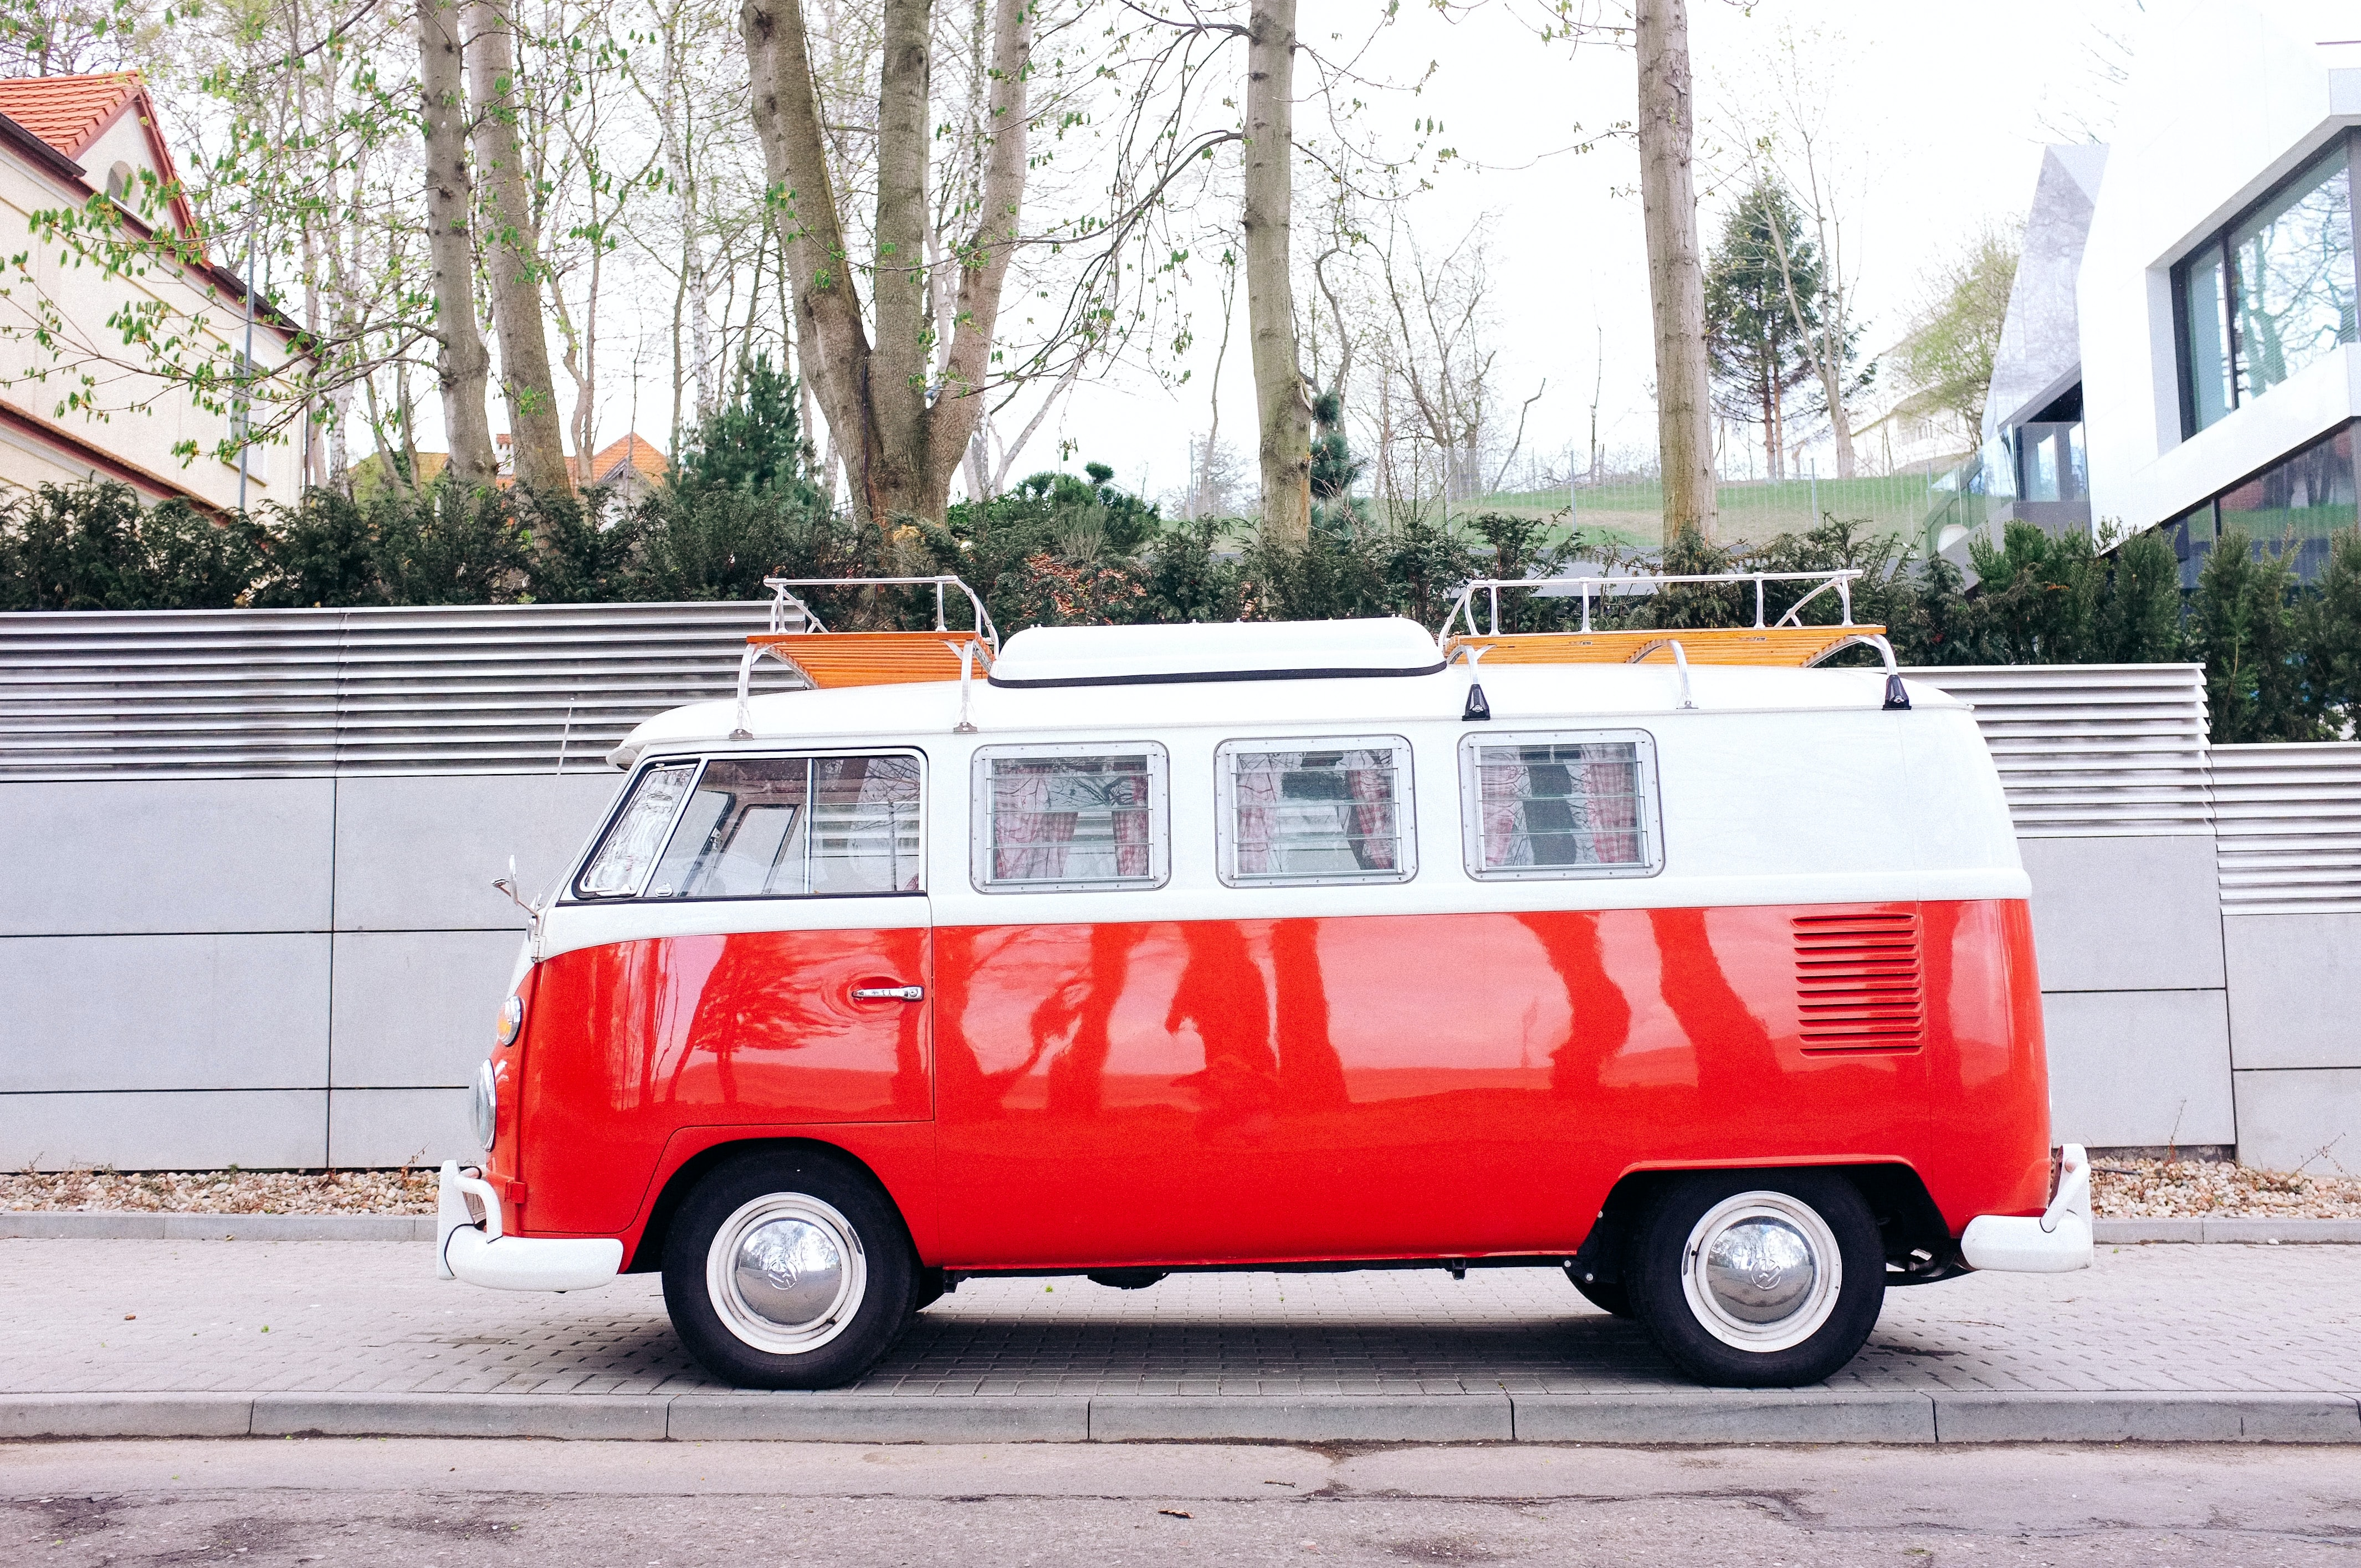 A red-and-white vintage minibus parked on the sidewalk